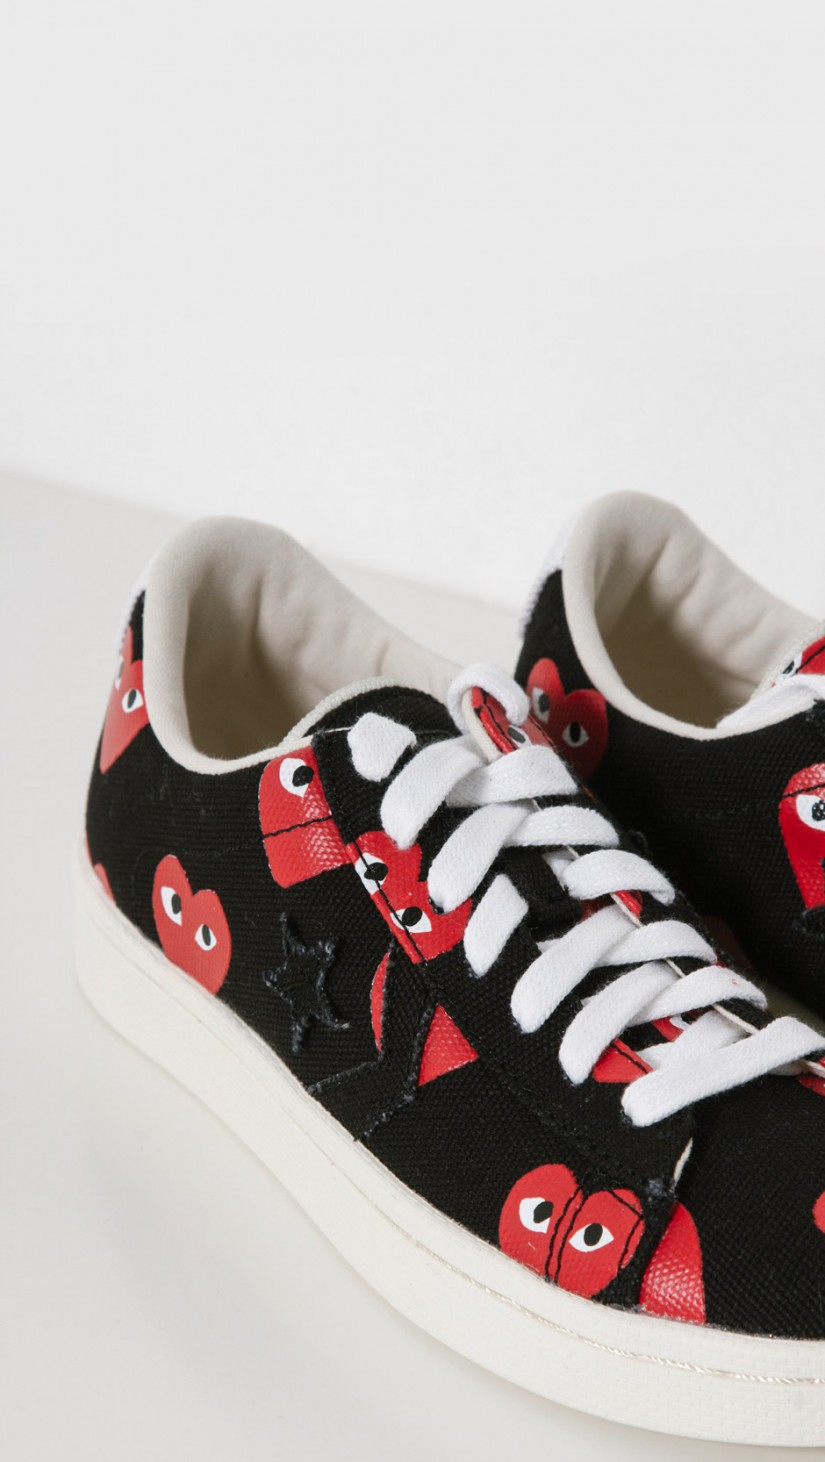 9c1698fde86 Lyst play comme des garçons play converse pro leather low in black jpg  825x1462 Cdg converse